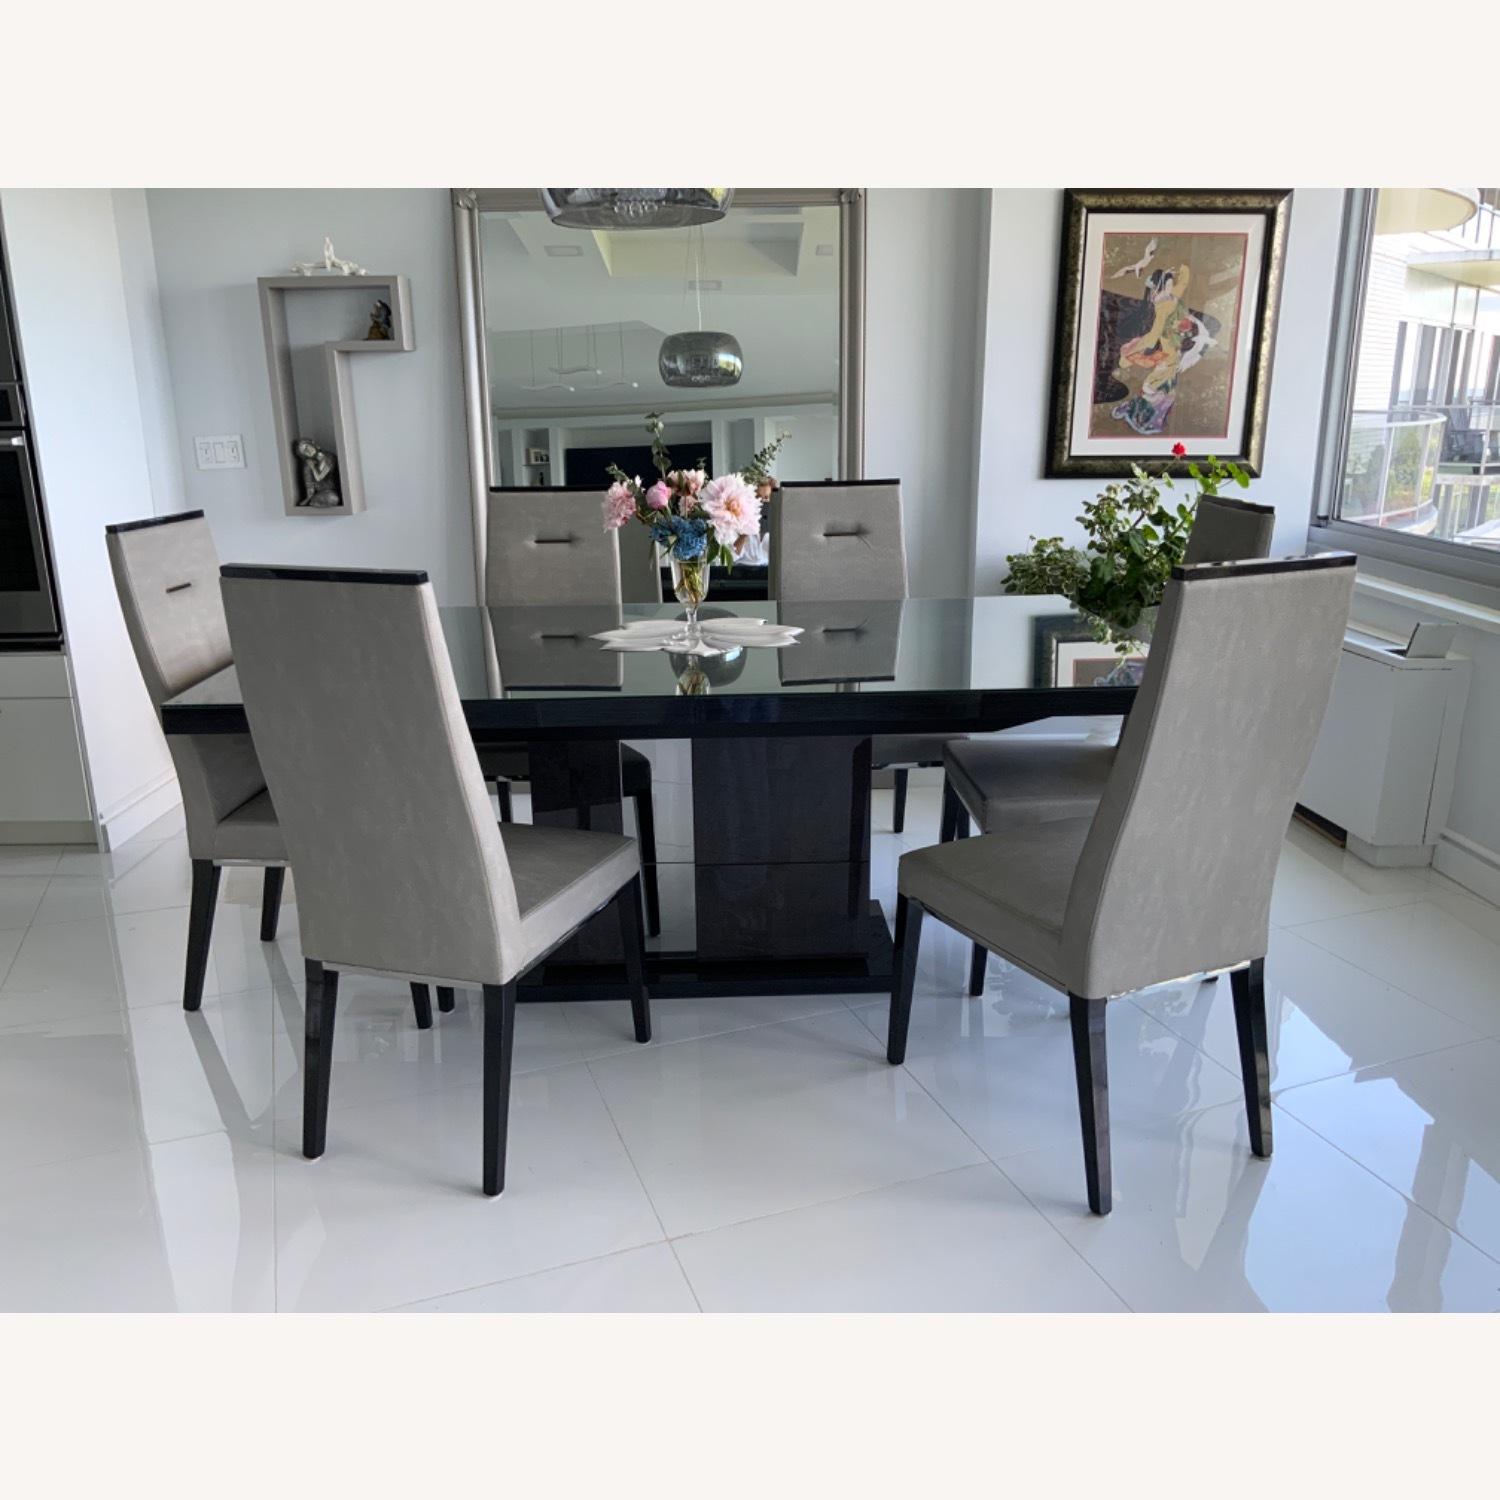 Dining Room Set - 6 leather chairs - image-6